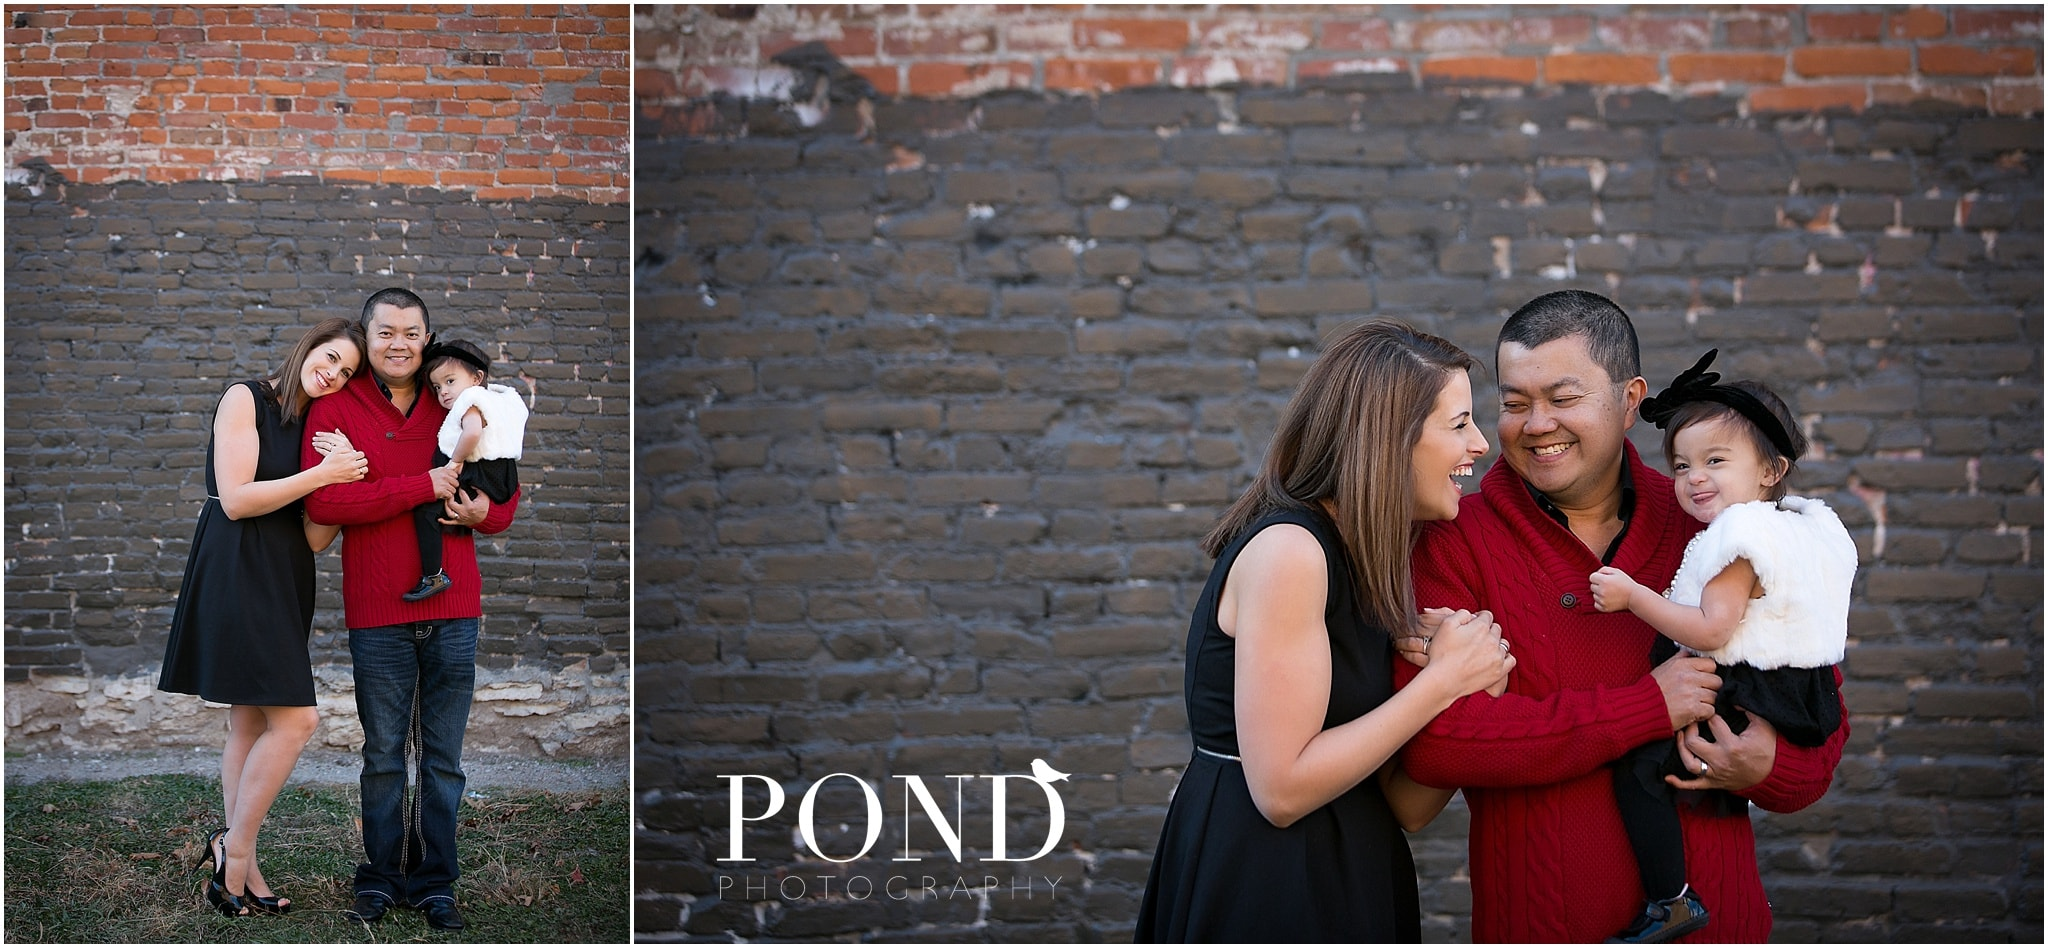 www.pond-photography.com